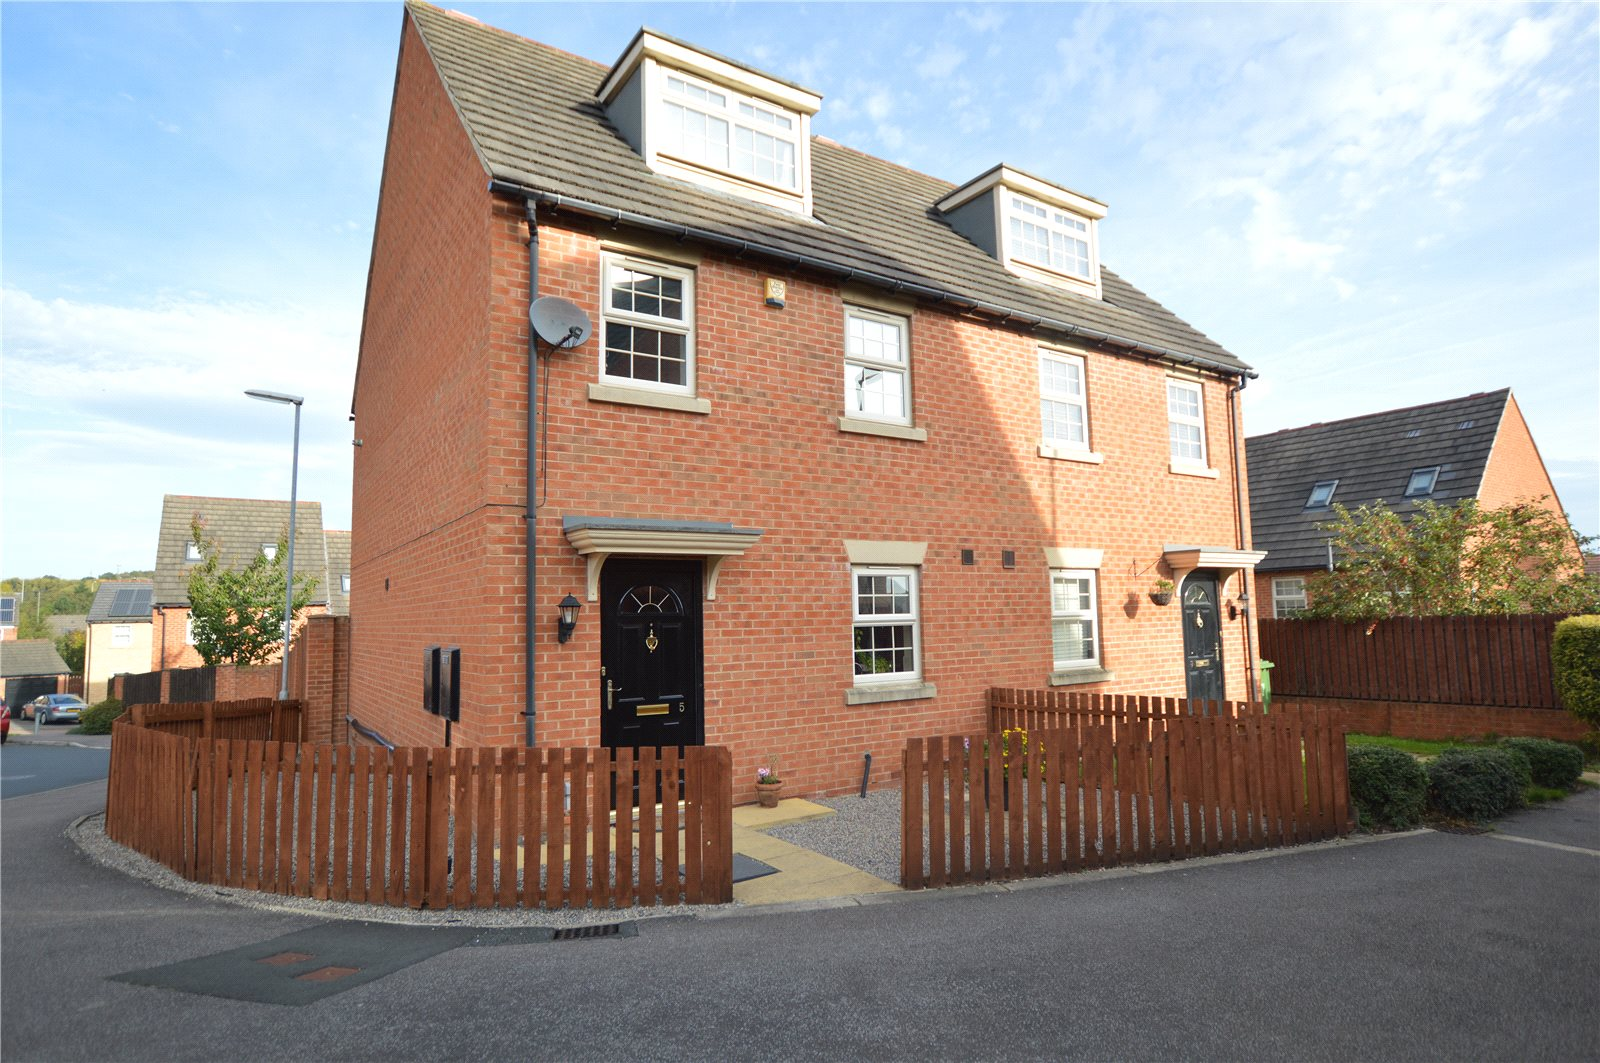 property for sale in Pudsey, exterior semi detached red brick home